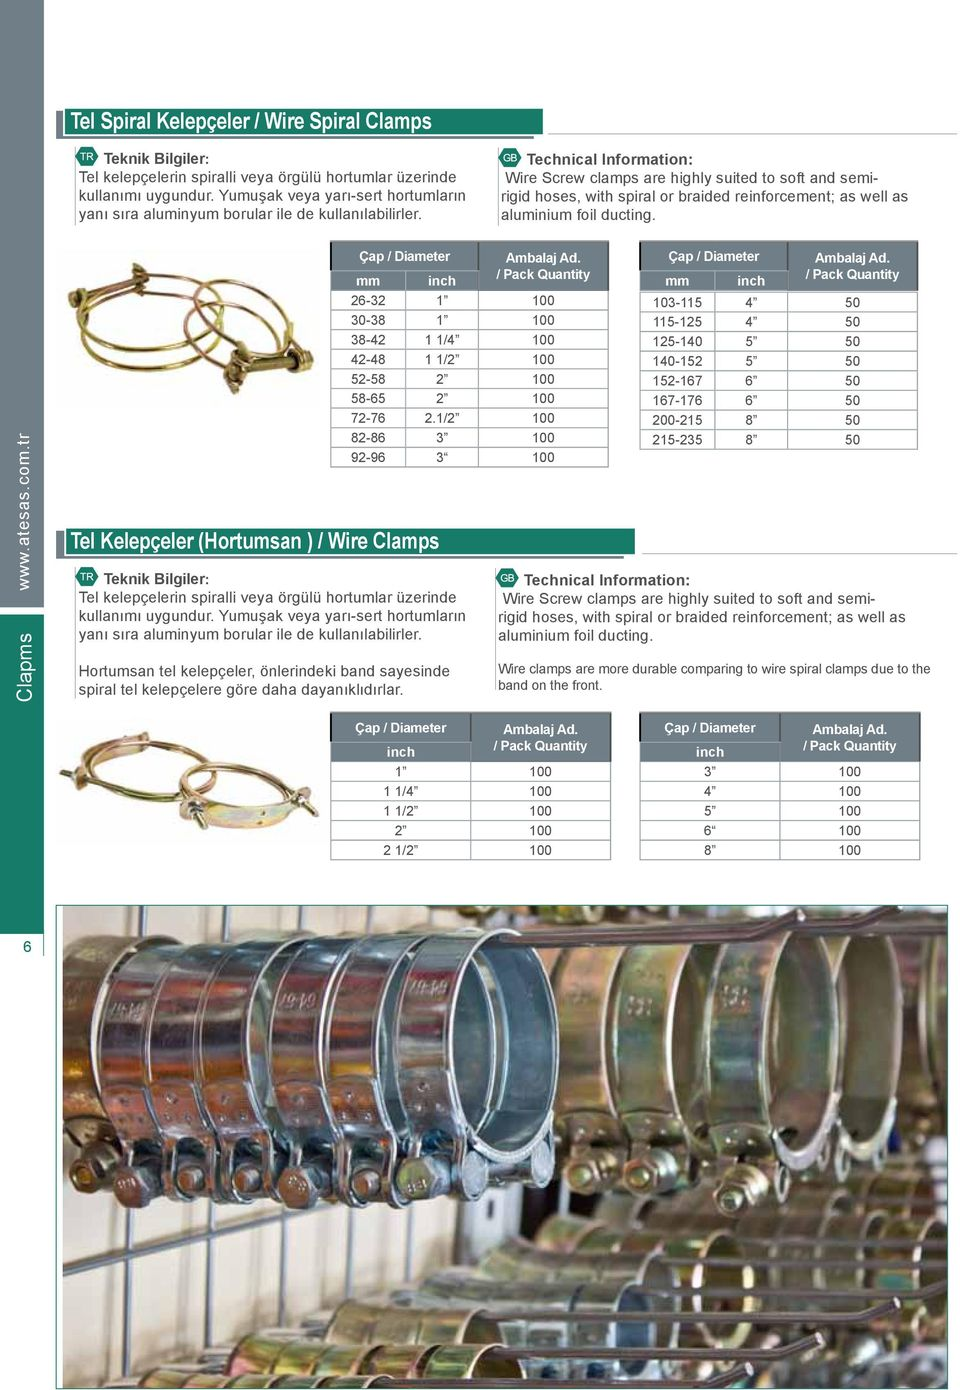 Wire Screw clamps are highly suited to soft and semirigid hoses, with spiral or braided reinforcement; as well as aluminium foil ducting. 6Clapms www.atesas.com.